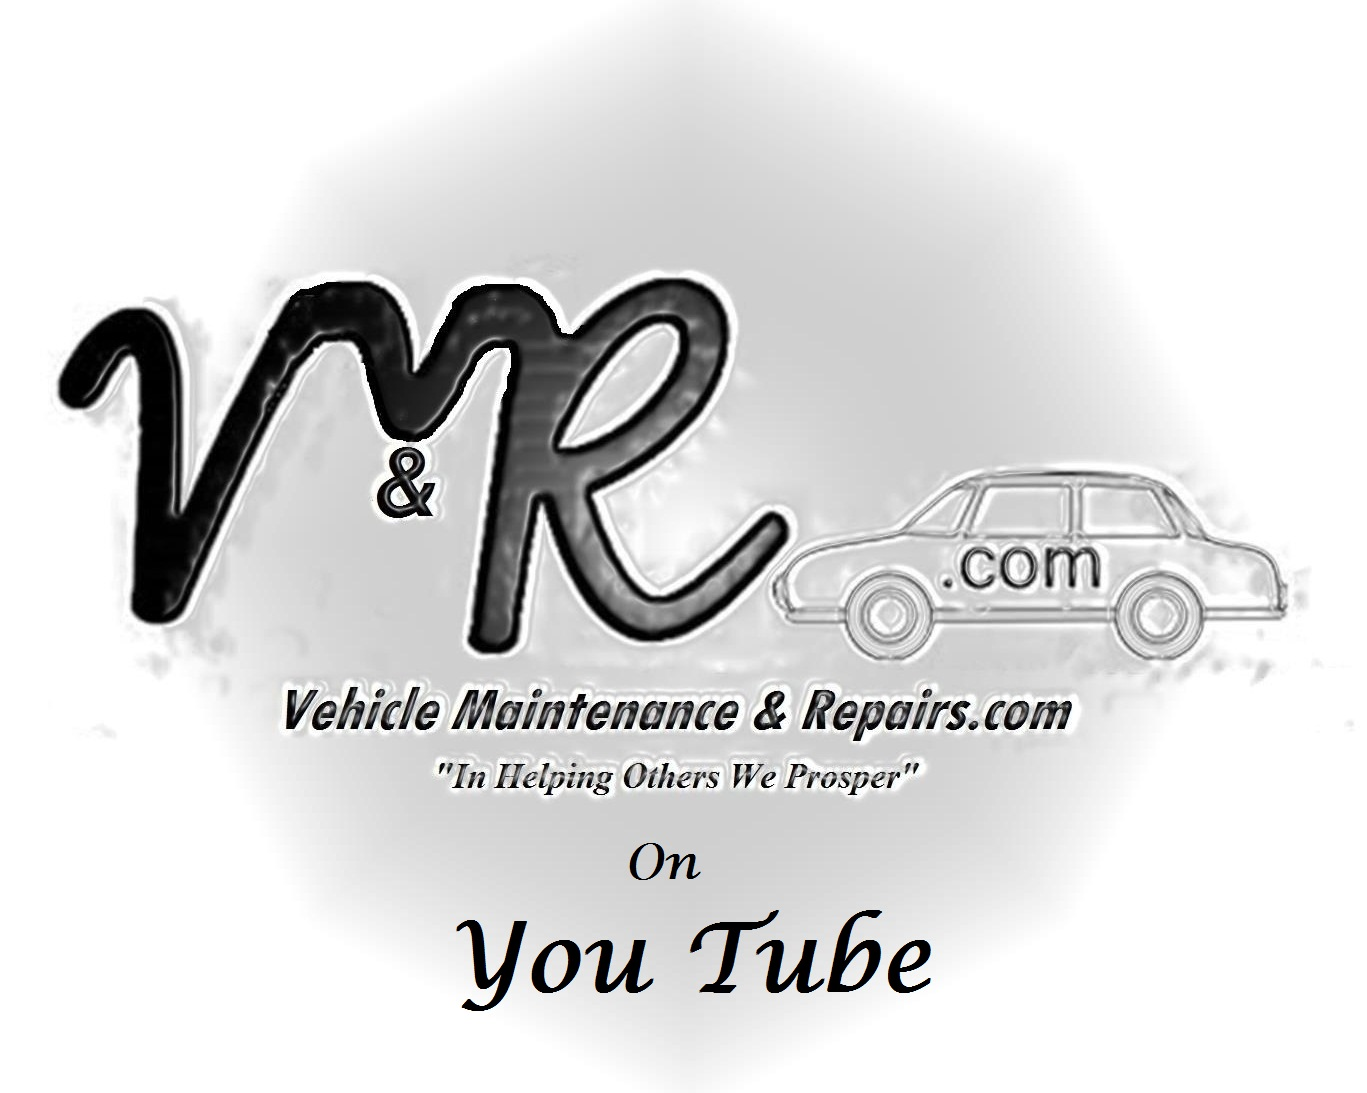 VM&R.com You Tube